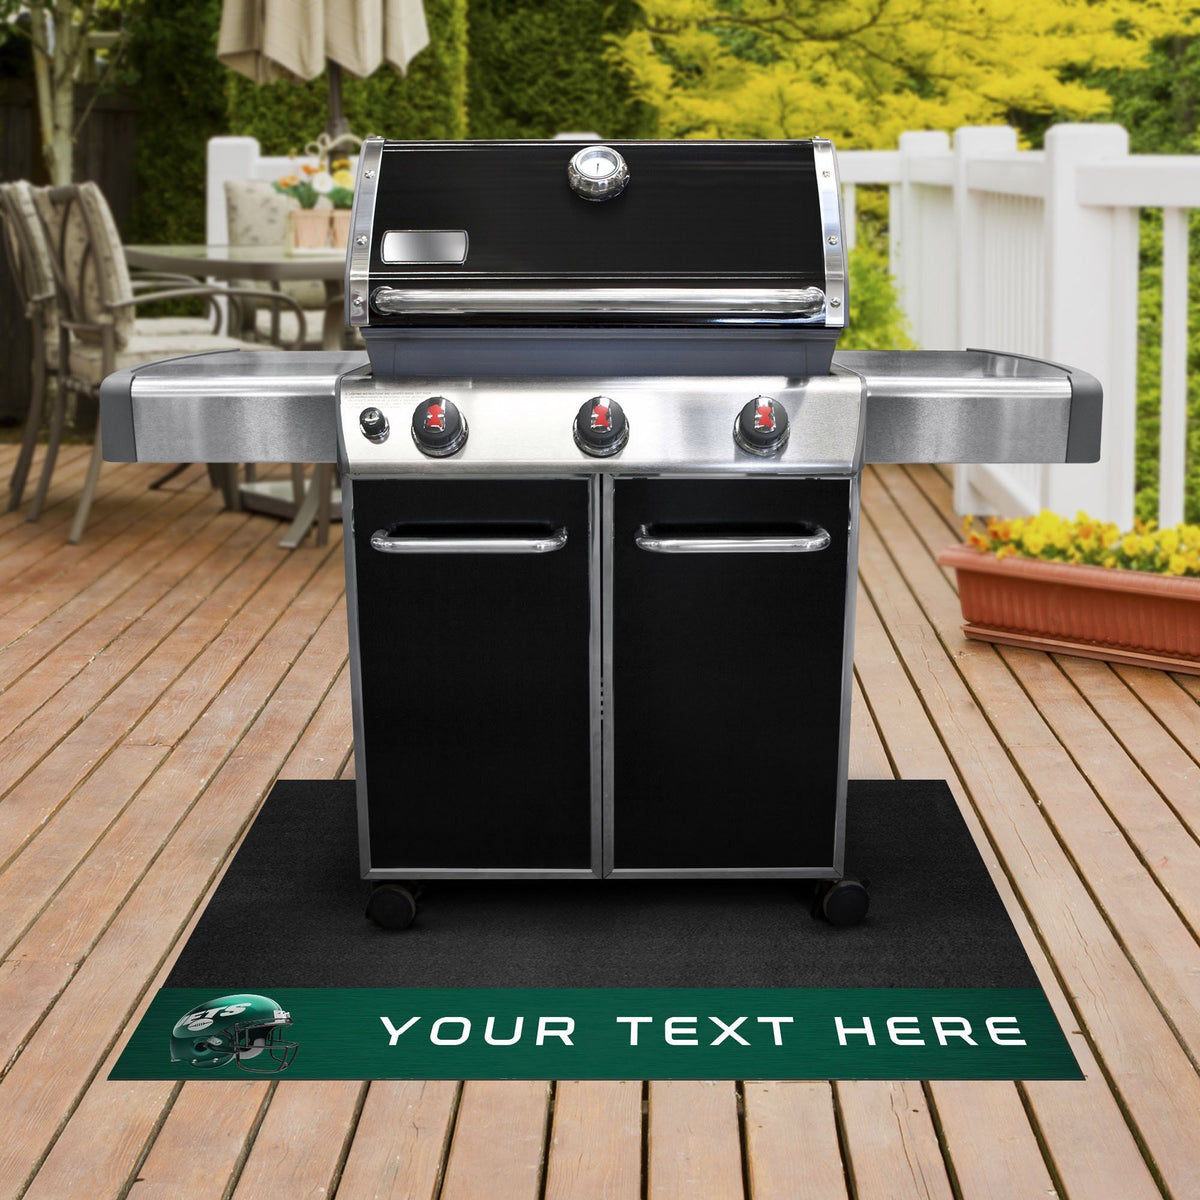 NFL Personalized Grill Mat Personalized Grill Mat Fan Mats New York Jets